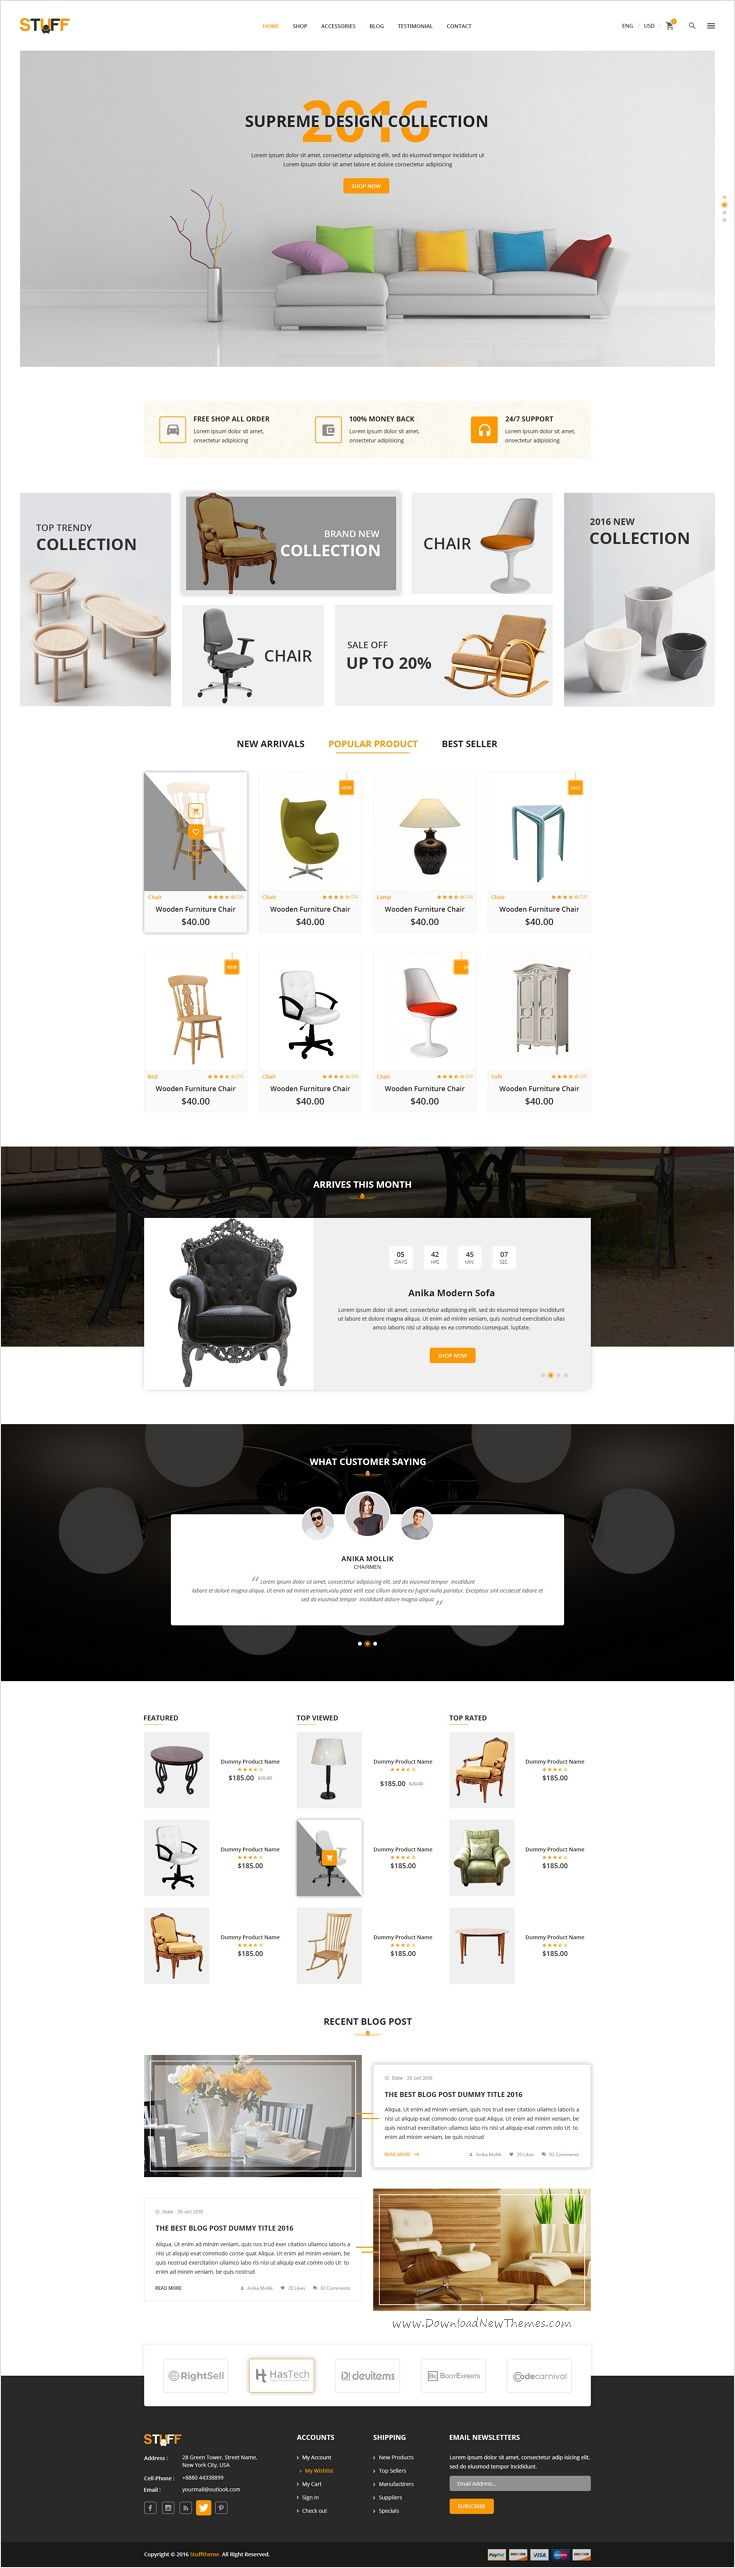 Stuff is a beautifully design premium #PSD Template for #Furniture #shop eCommerce website download now➩ https://themeforest.net/item/stuff-furniture-ecommerce-psd-template/18411293?ref=Datasata